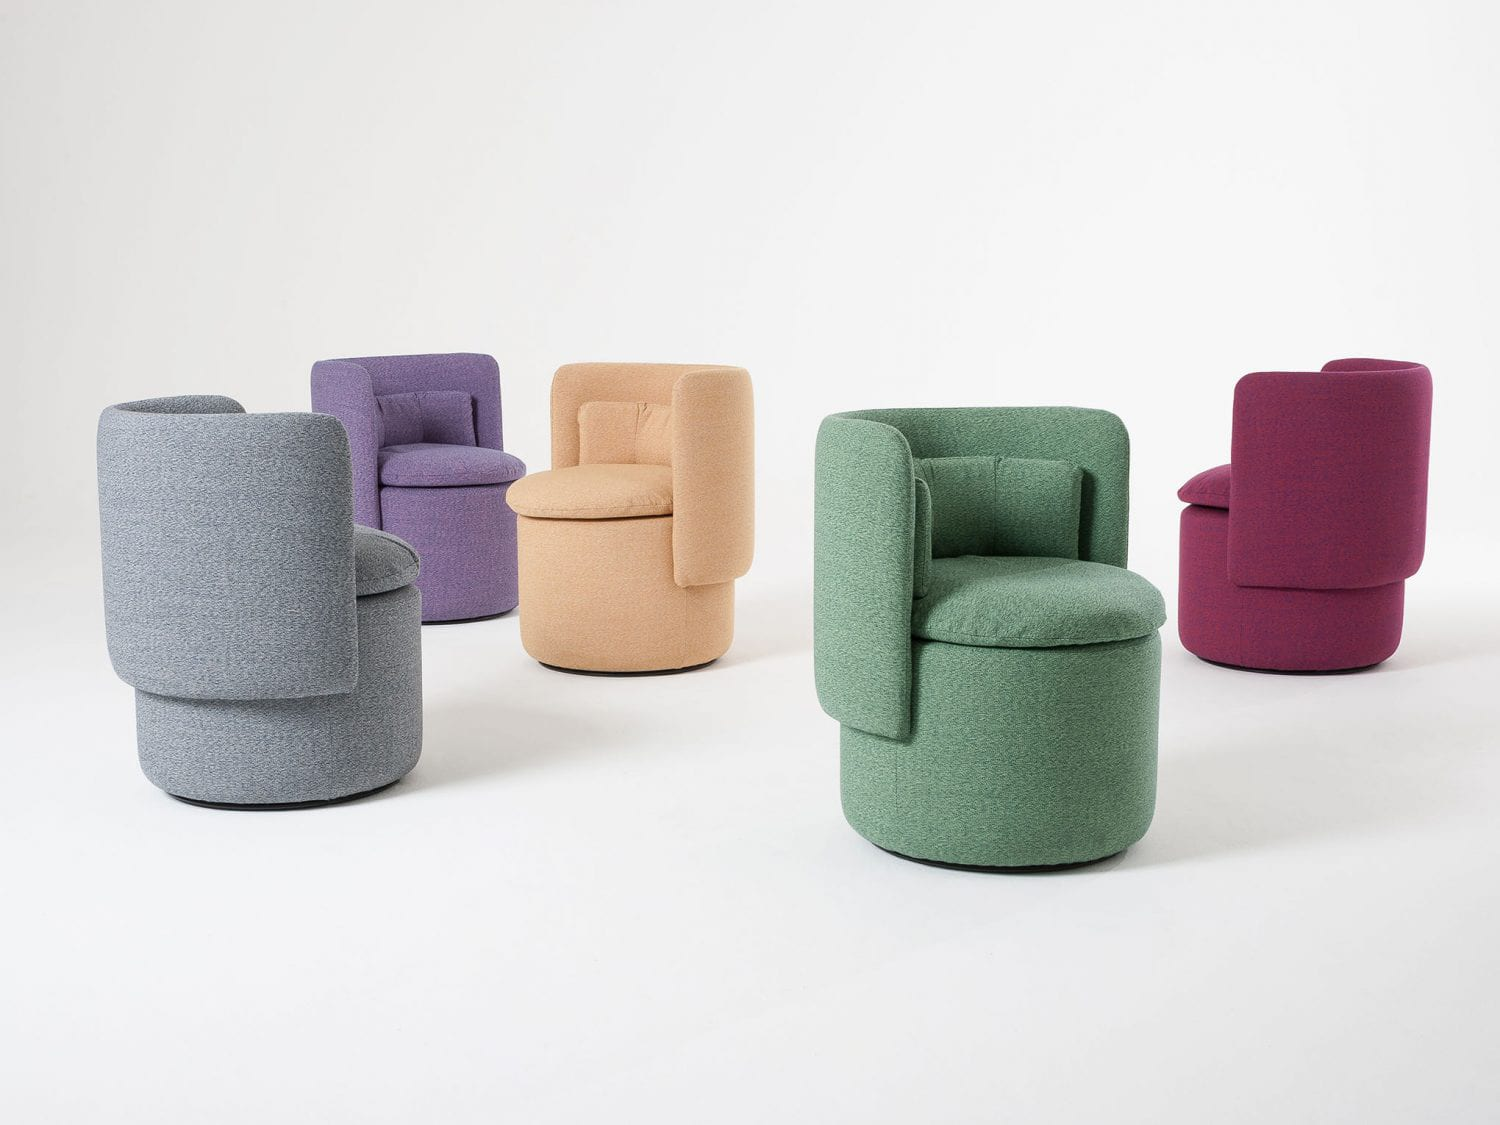 Group Armchair by Philippe Malouin for SCP at Maison & Objet 2018